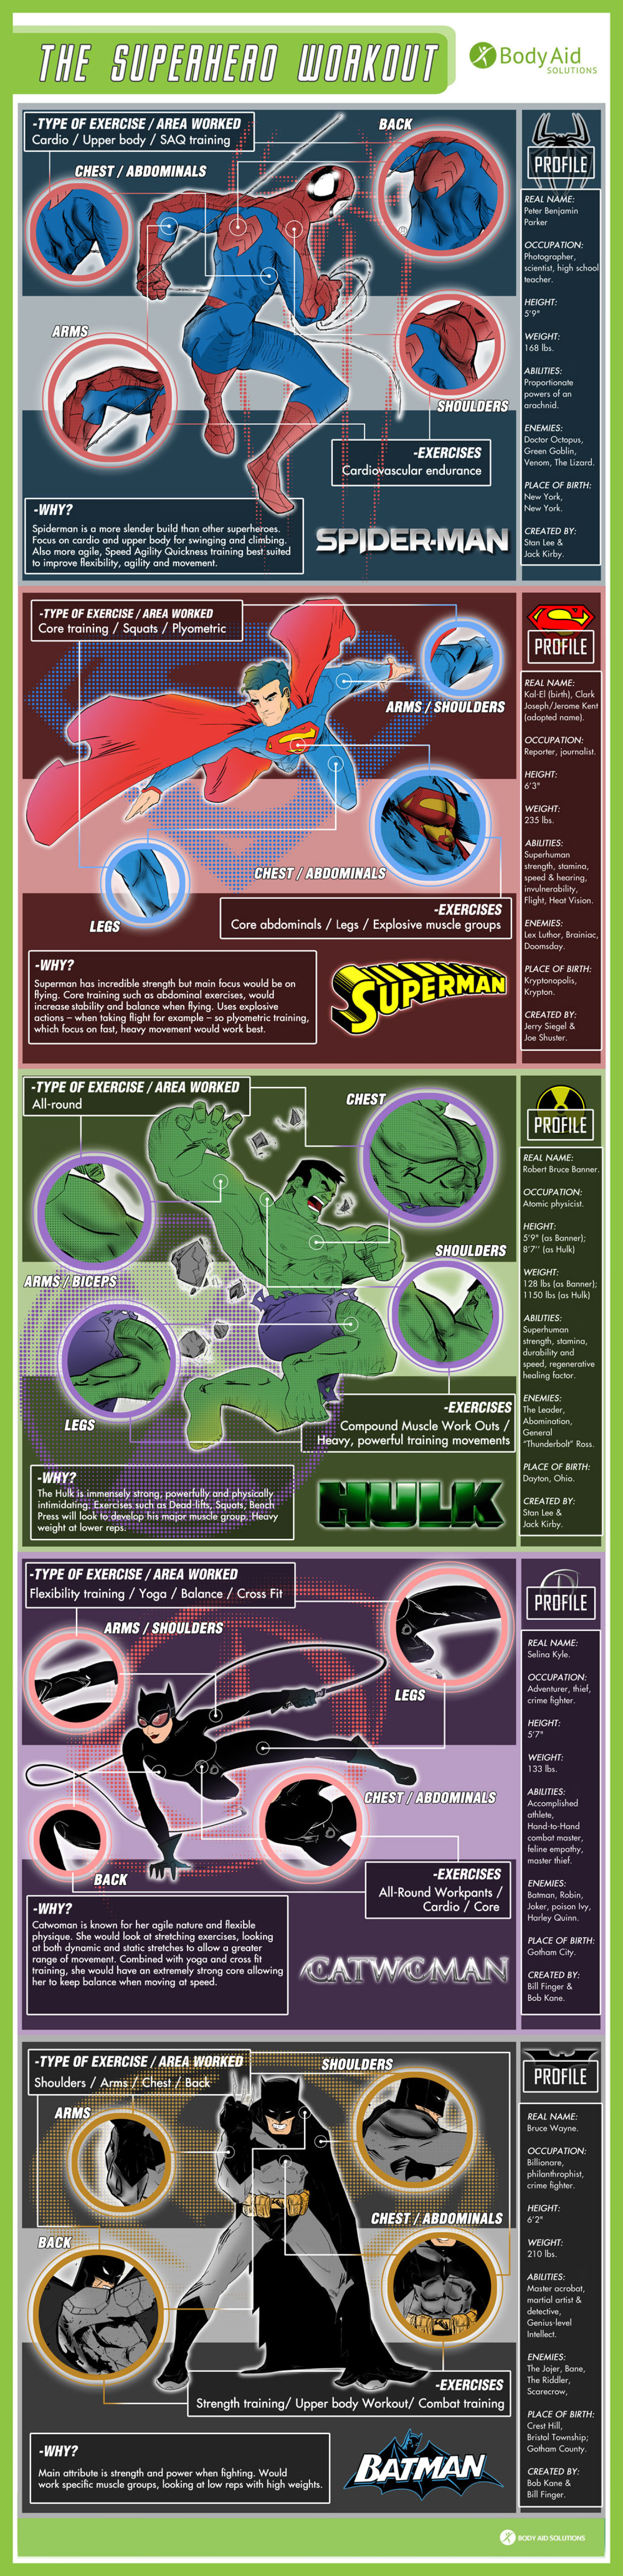 The Superhero Workout Infographic